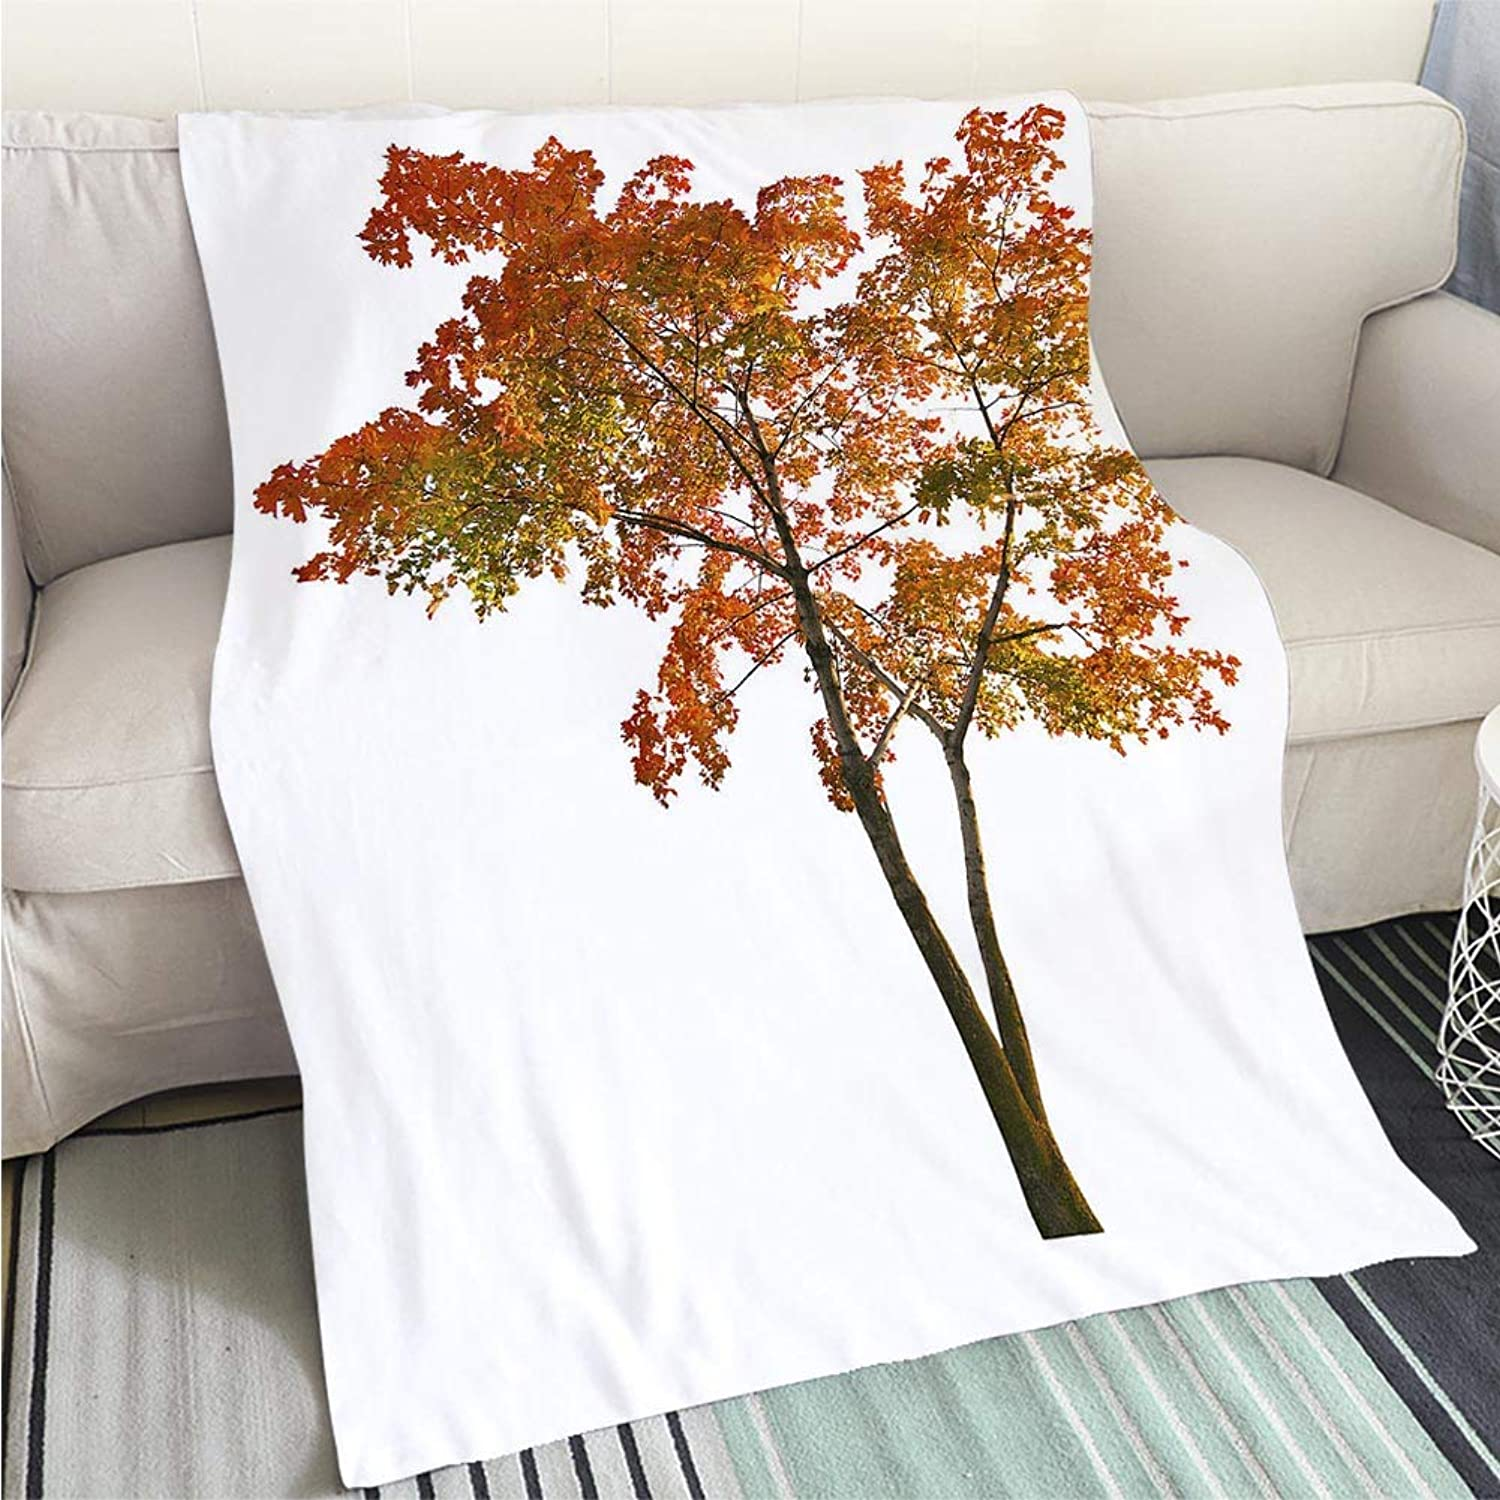 Comforter Multicolor Bed or Couch red Autumn Maple Tree isoalted on White Perfect for Couch Sofa or Bed Cool Quilt